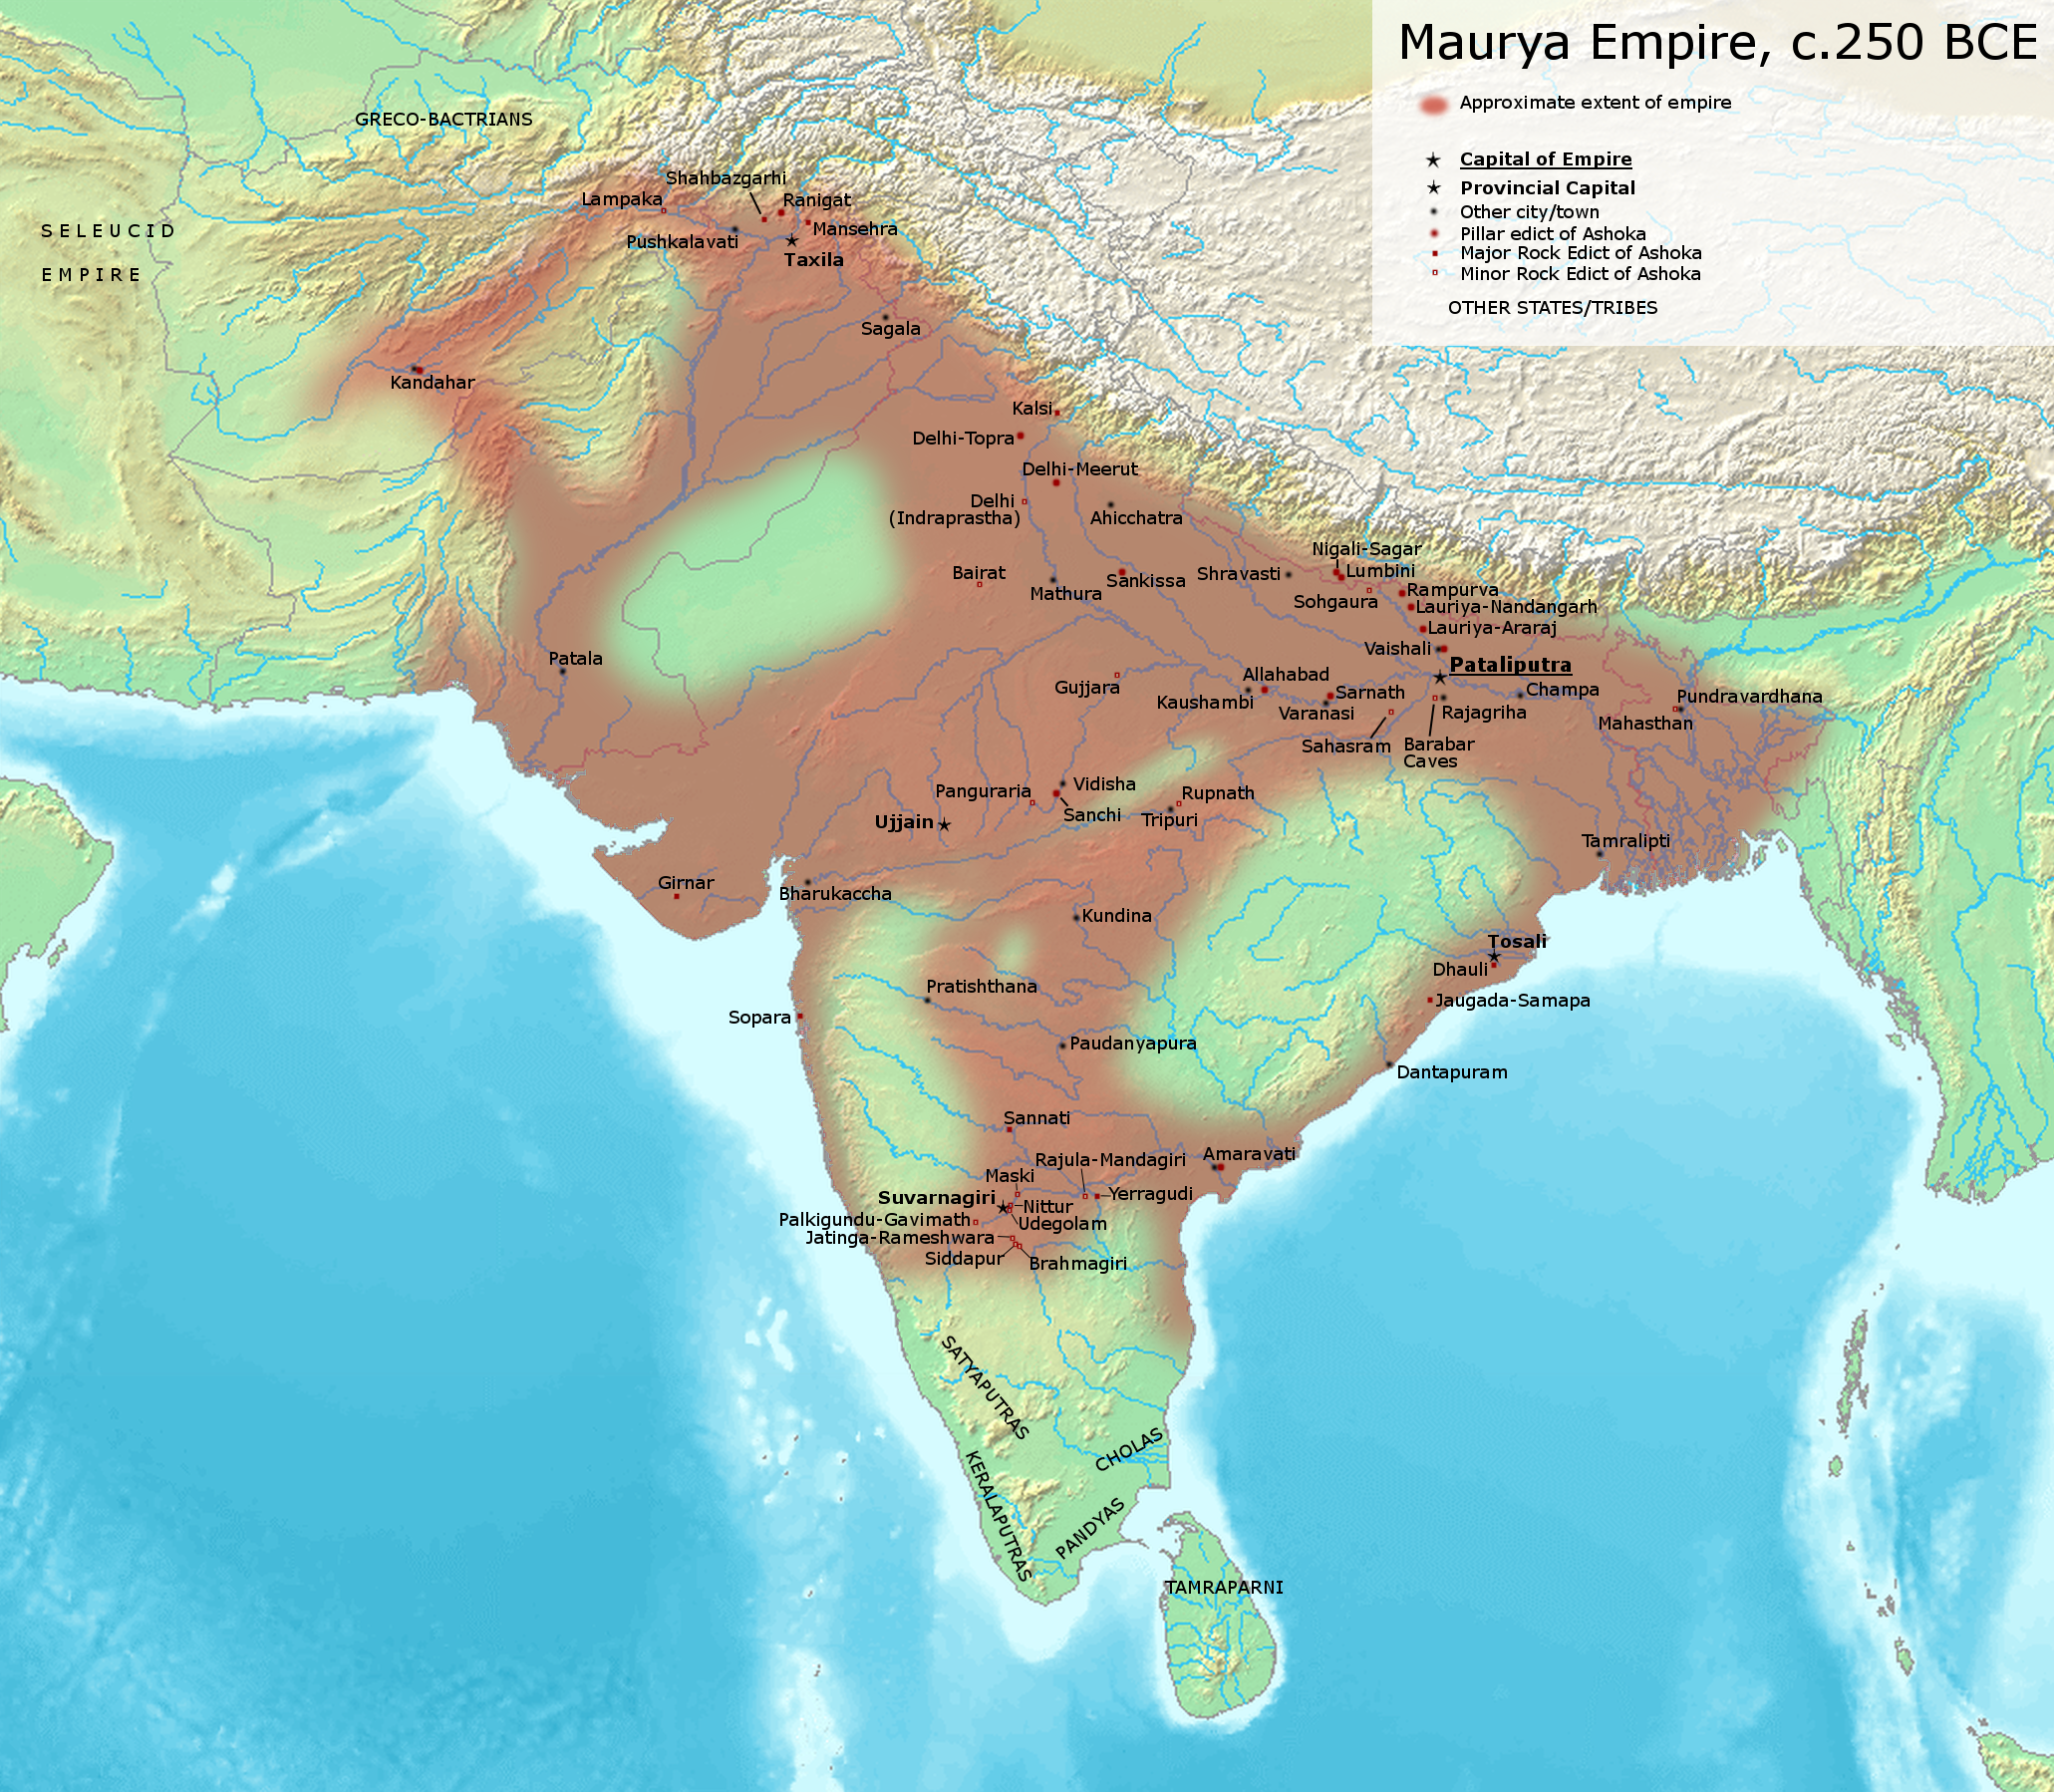 The sprawling Maurya Empire in about 250 B.C. Credit: Avantiputra7/Wikimedia Commons, CC BY-SA